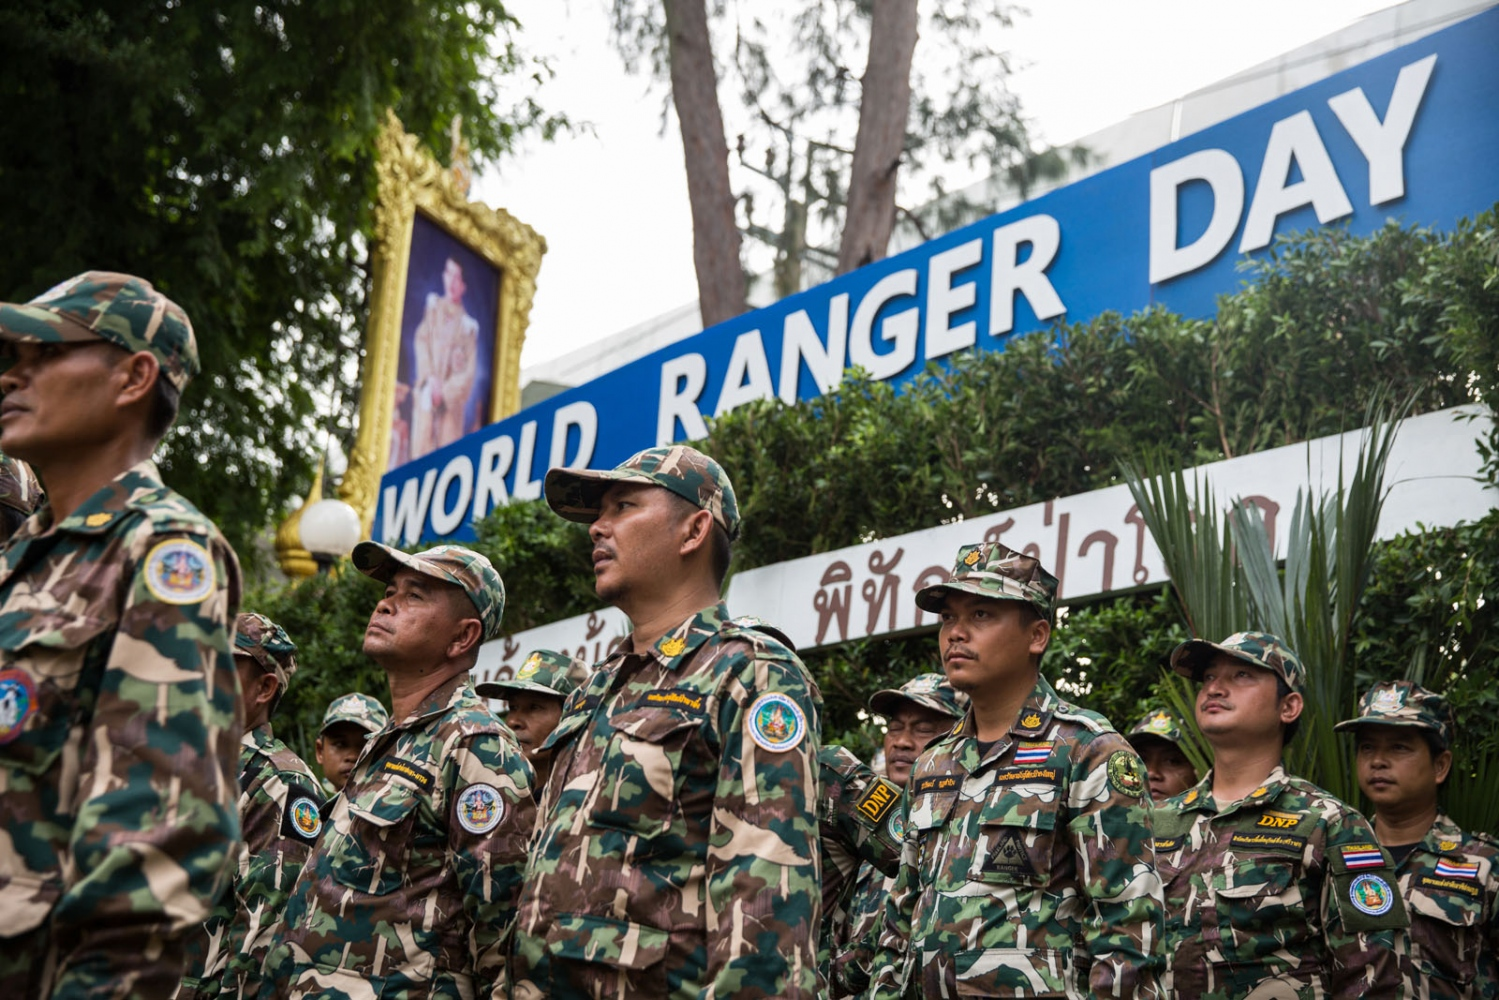 Thai Forest Rangers from every National Park in Thailand take part in World Ranger Day 2018 celebrations at the Department of National Parks in Bangkok, Thailand. July 31 2018